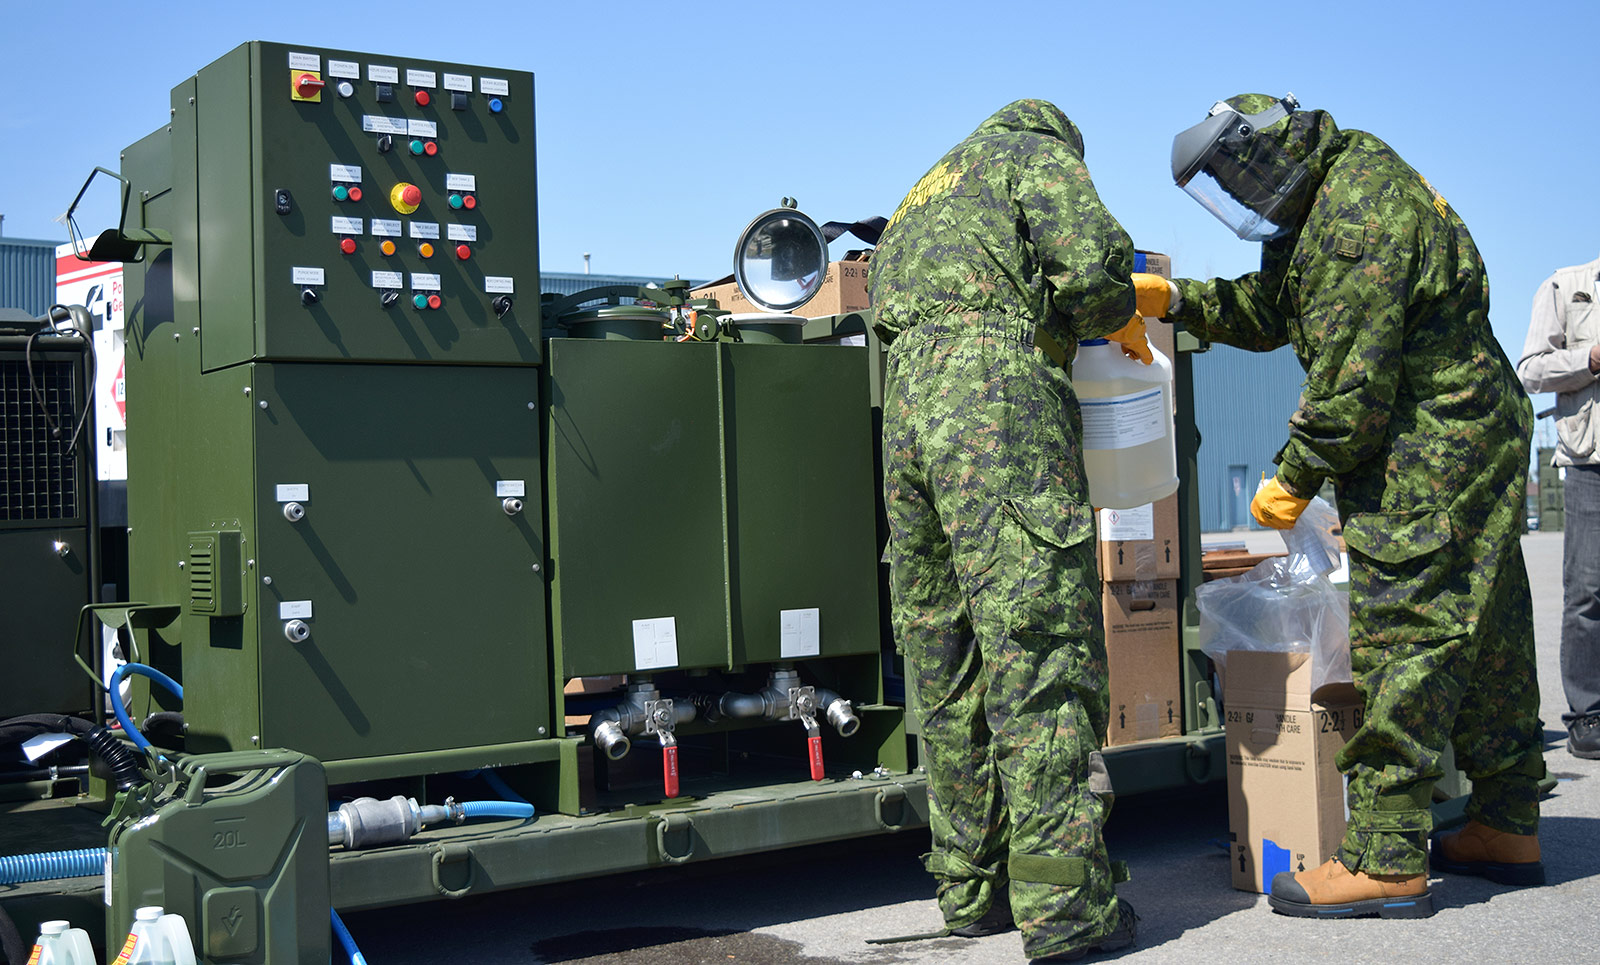 CBRN Personnel and Vehicle Decontamination Systems